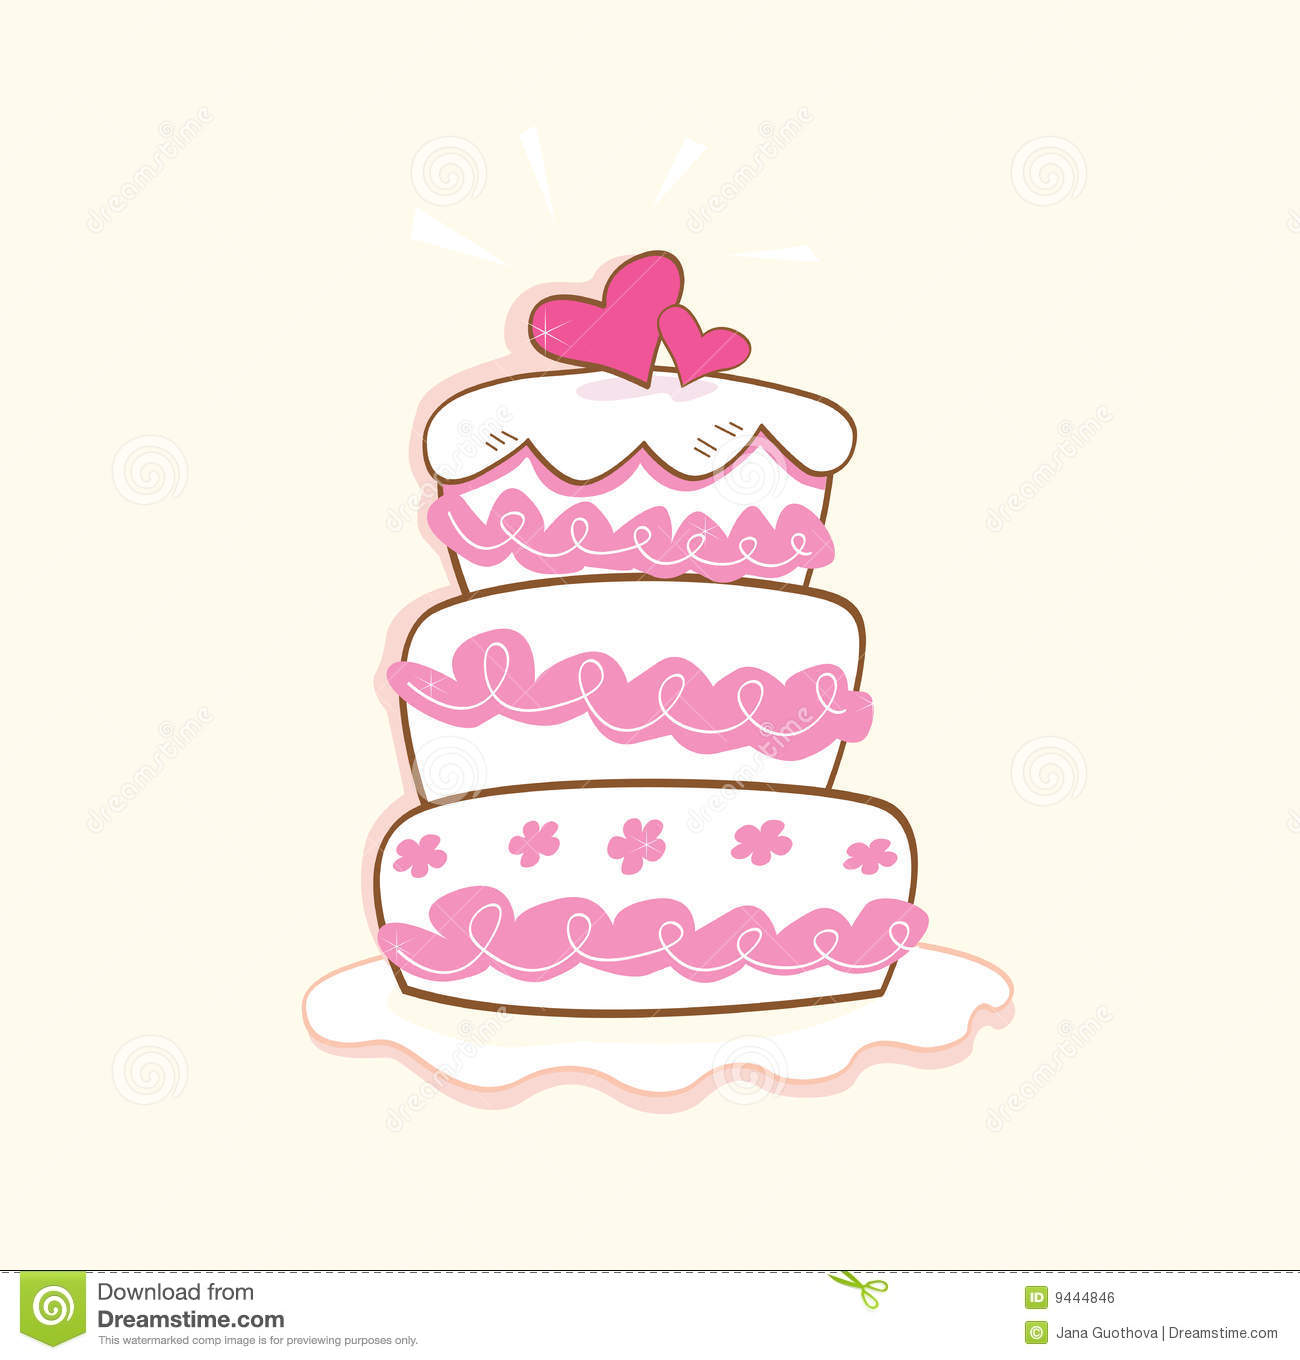 Wedding Cake Images Cartoon : Wedding Cake Royalty Free Stock Image - Image: 9444846